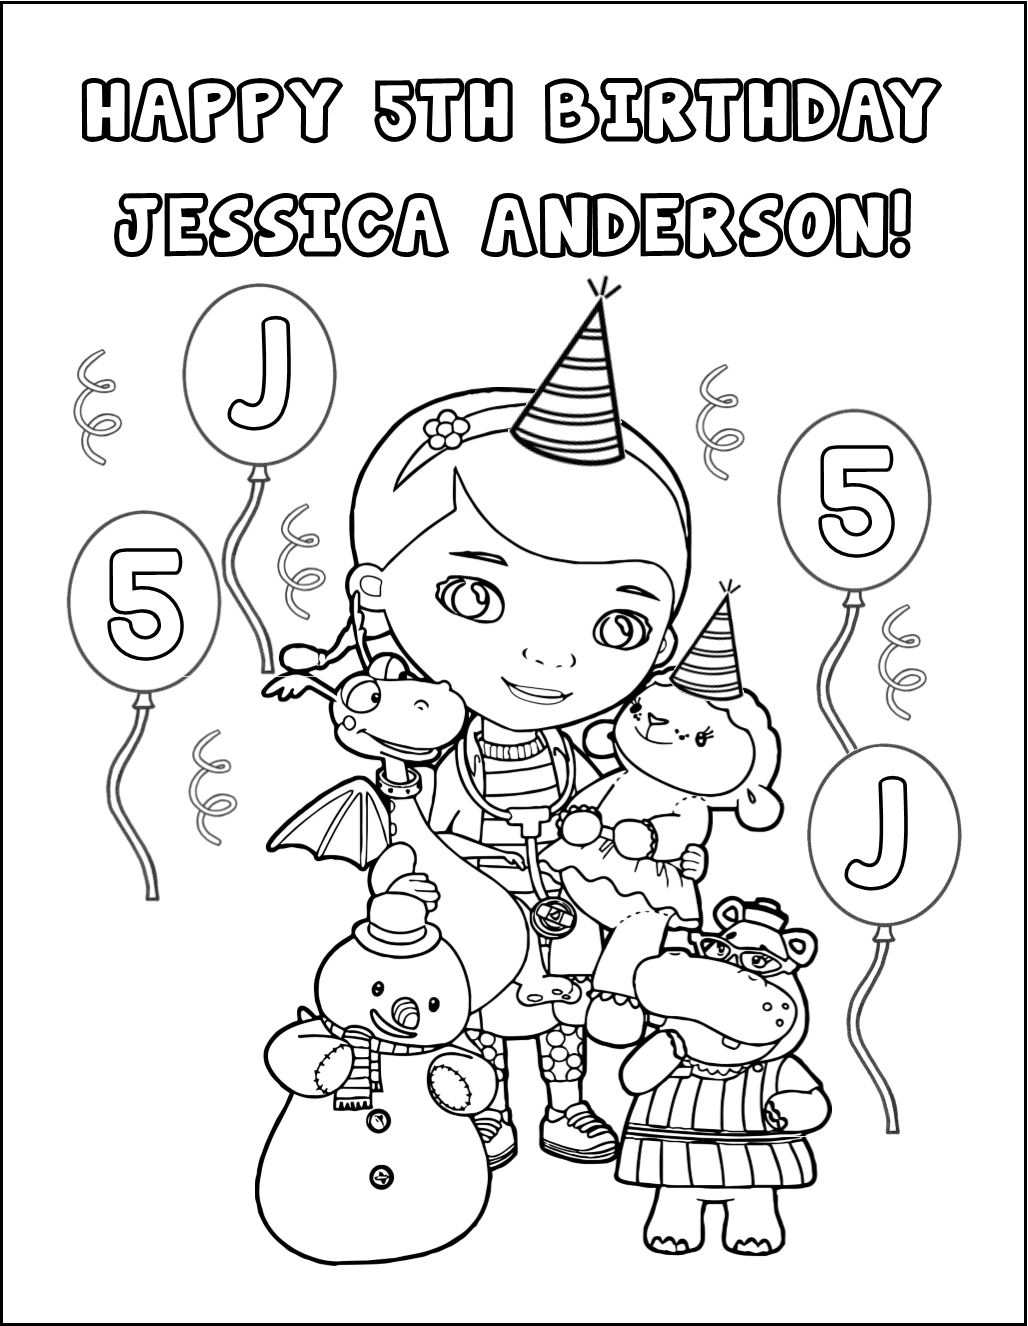 Top Doc Mcstuffin S Party Games And Ideas Doc Mcstuffins Toys Doc Mcstuffins Party Doc Mcstuffins Coloring Pages